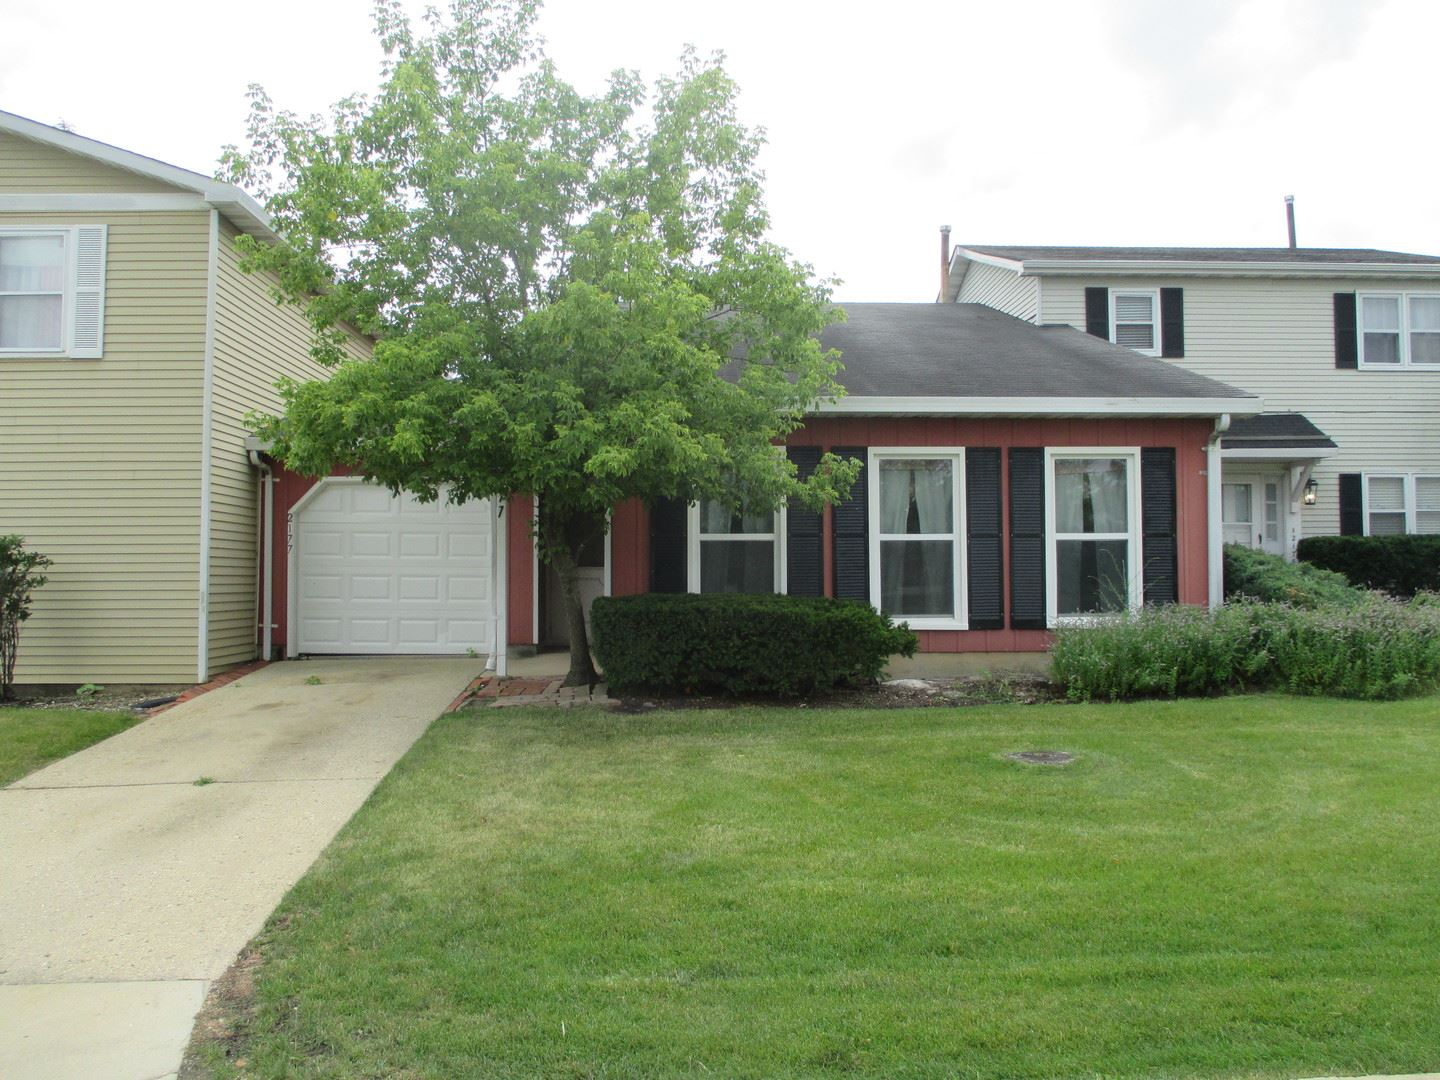 2177 College Drive, Glendale Heights, IL 60139 - #: 10805337